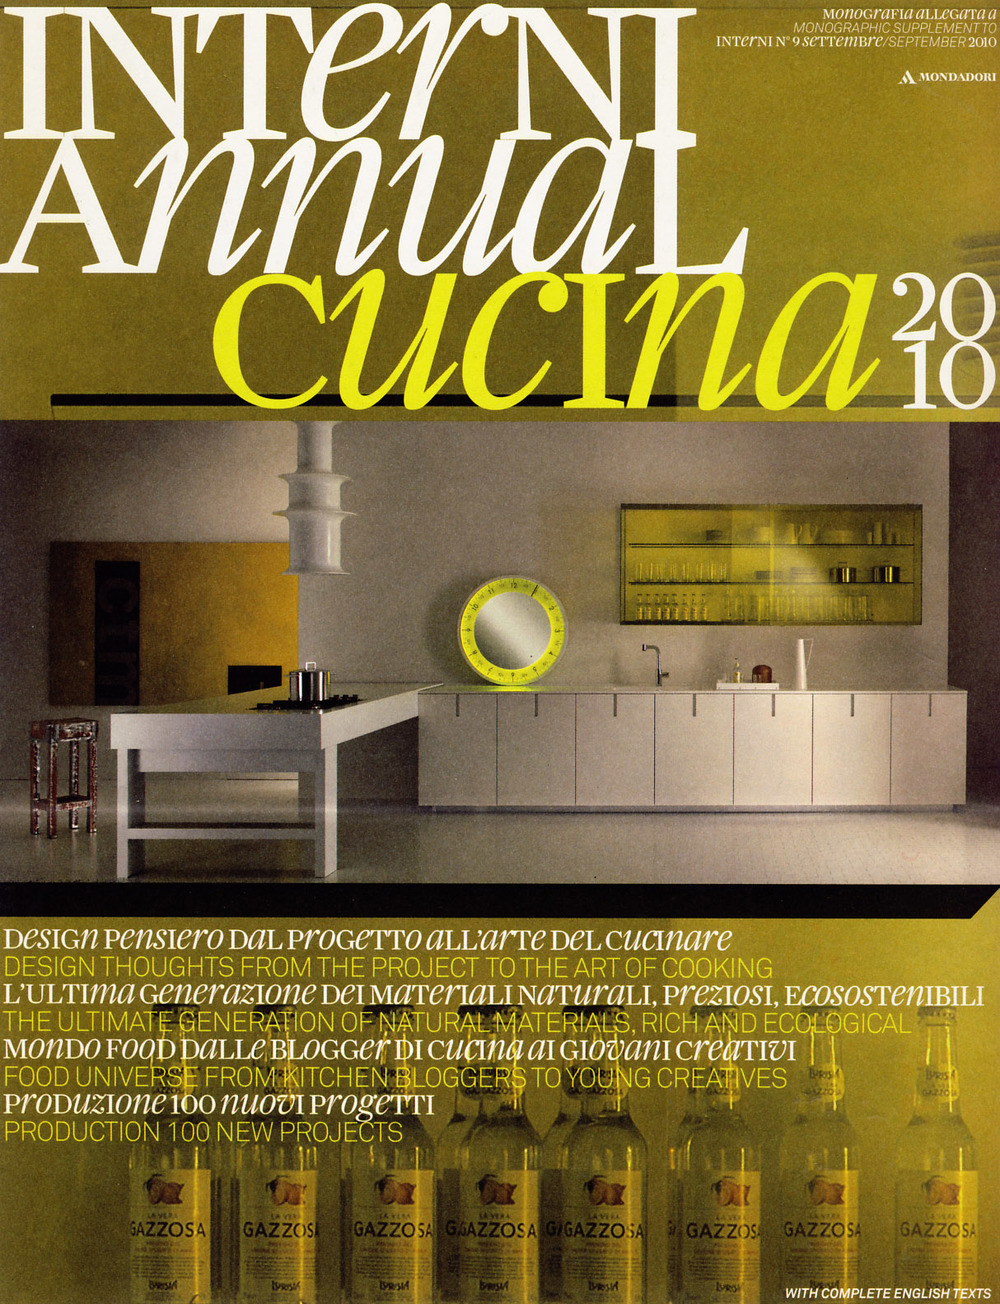 Interni Annual Cucina Cover_web.jpg